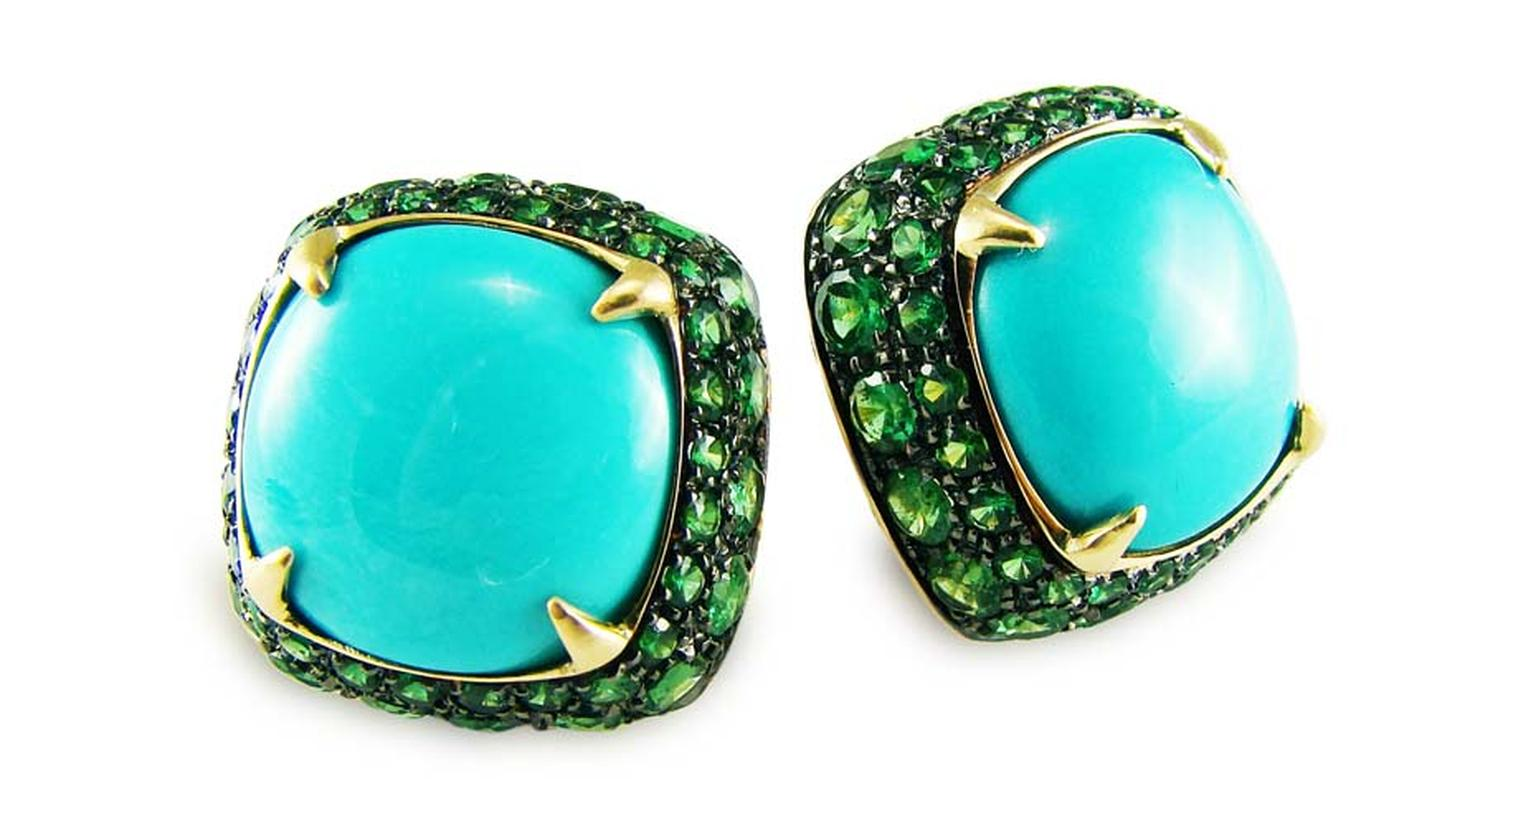 Inspired by the azure sea, Corrado Giuspino's earrings feature tsavorites surrounding a central turquoise stone.